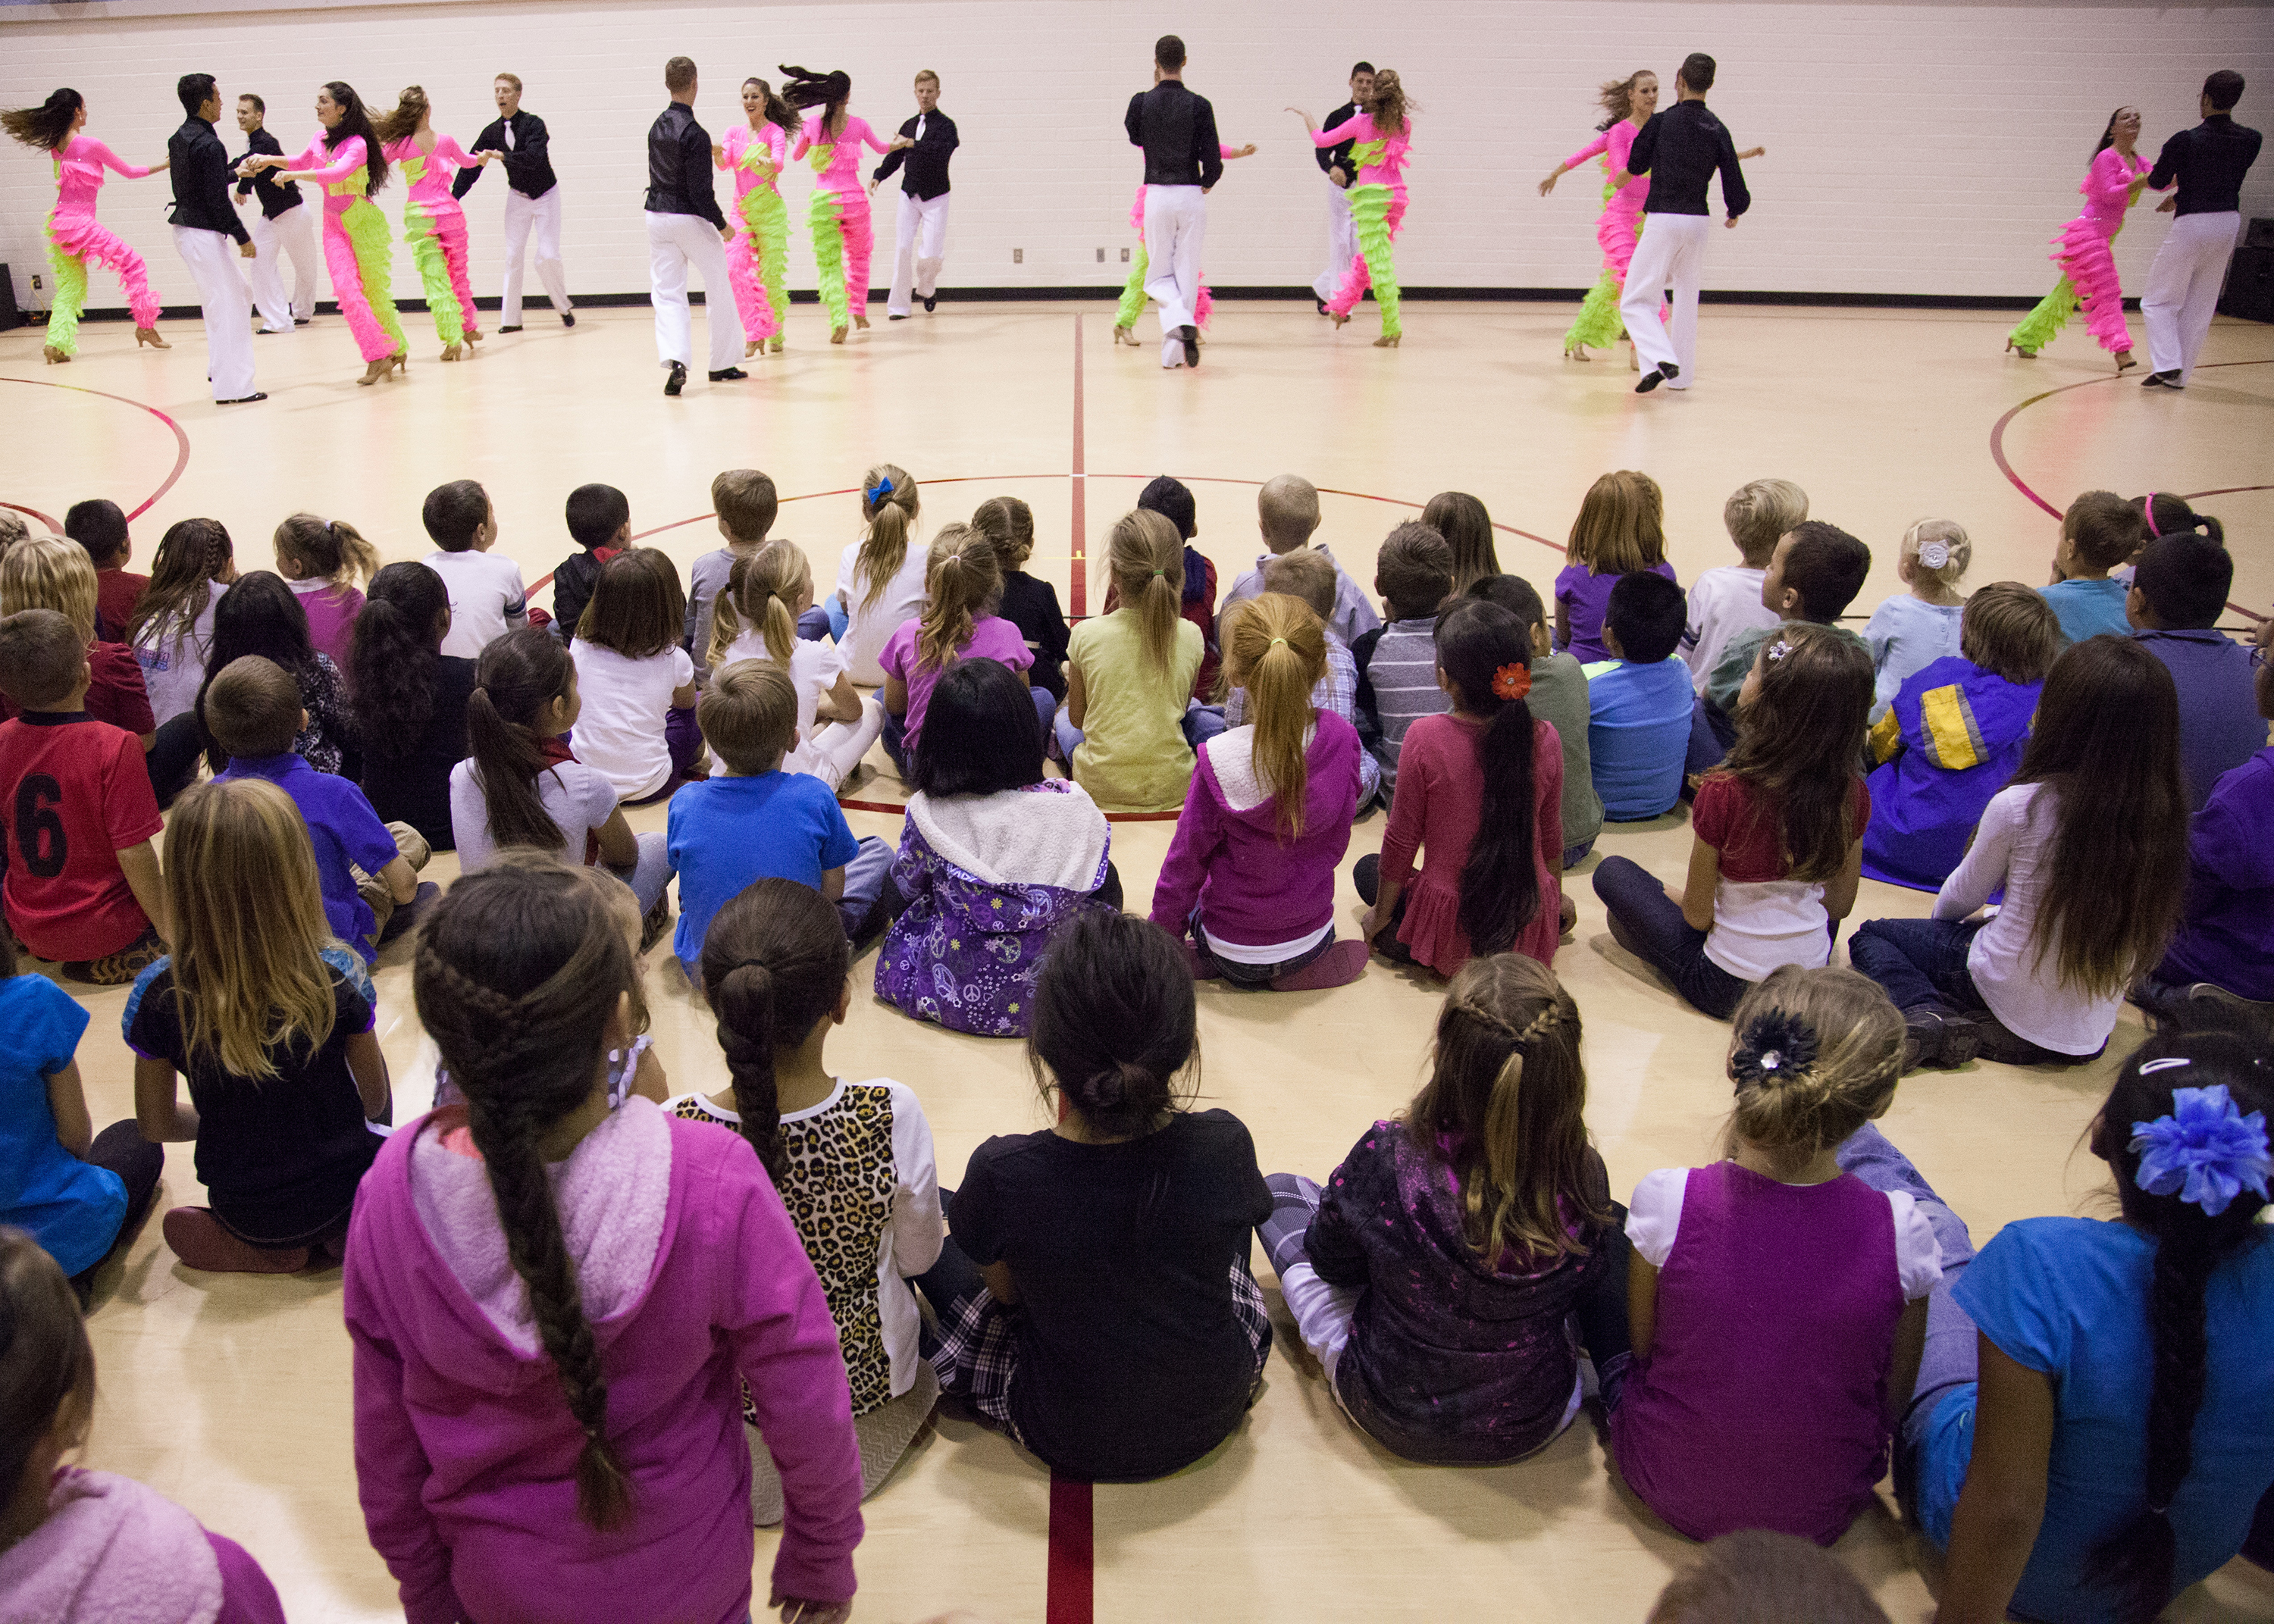 https://pam.byu.edu/wp-content/uploads/2015/02/2014-Oct-BDC-AZ-Tour-6-St-Johns-Elem-show-2.jpg